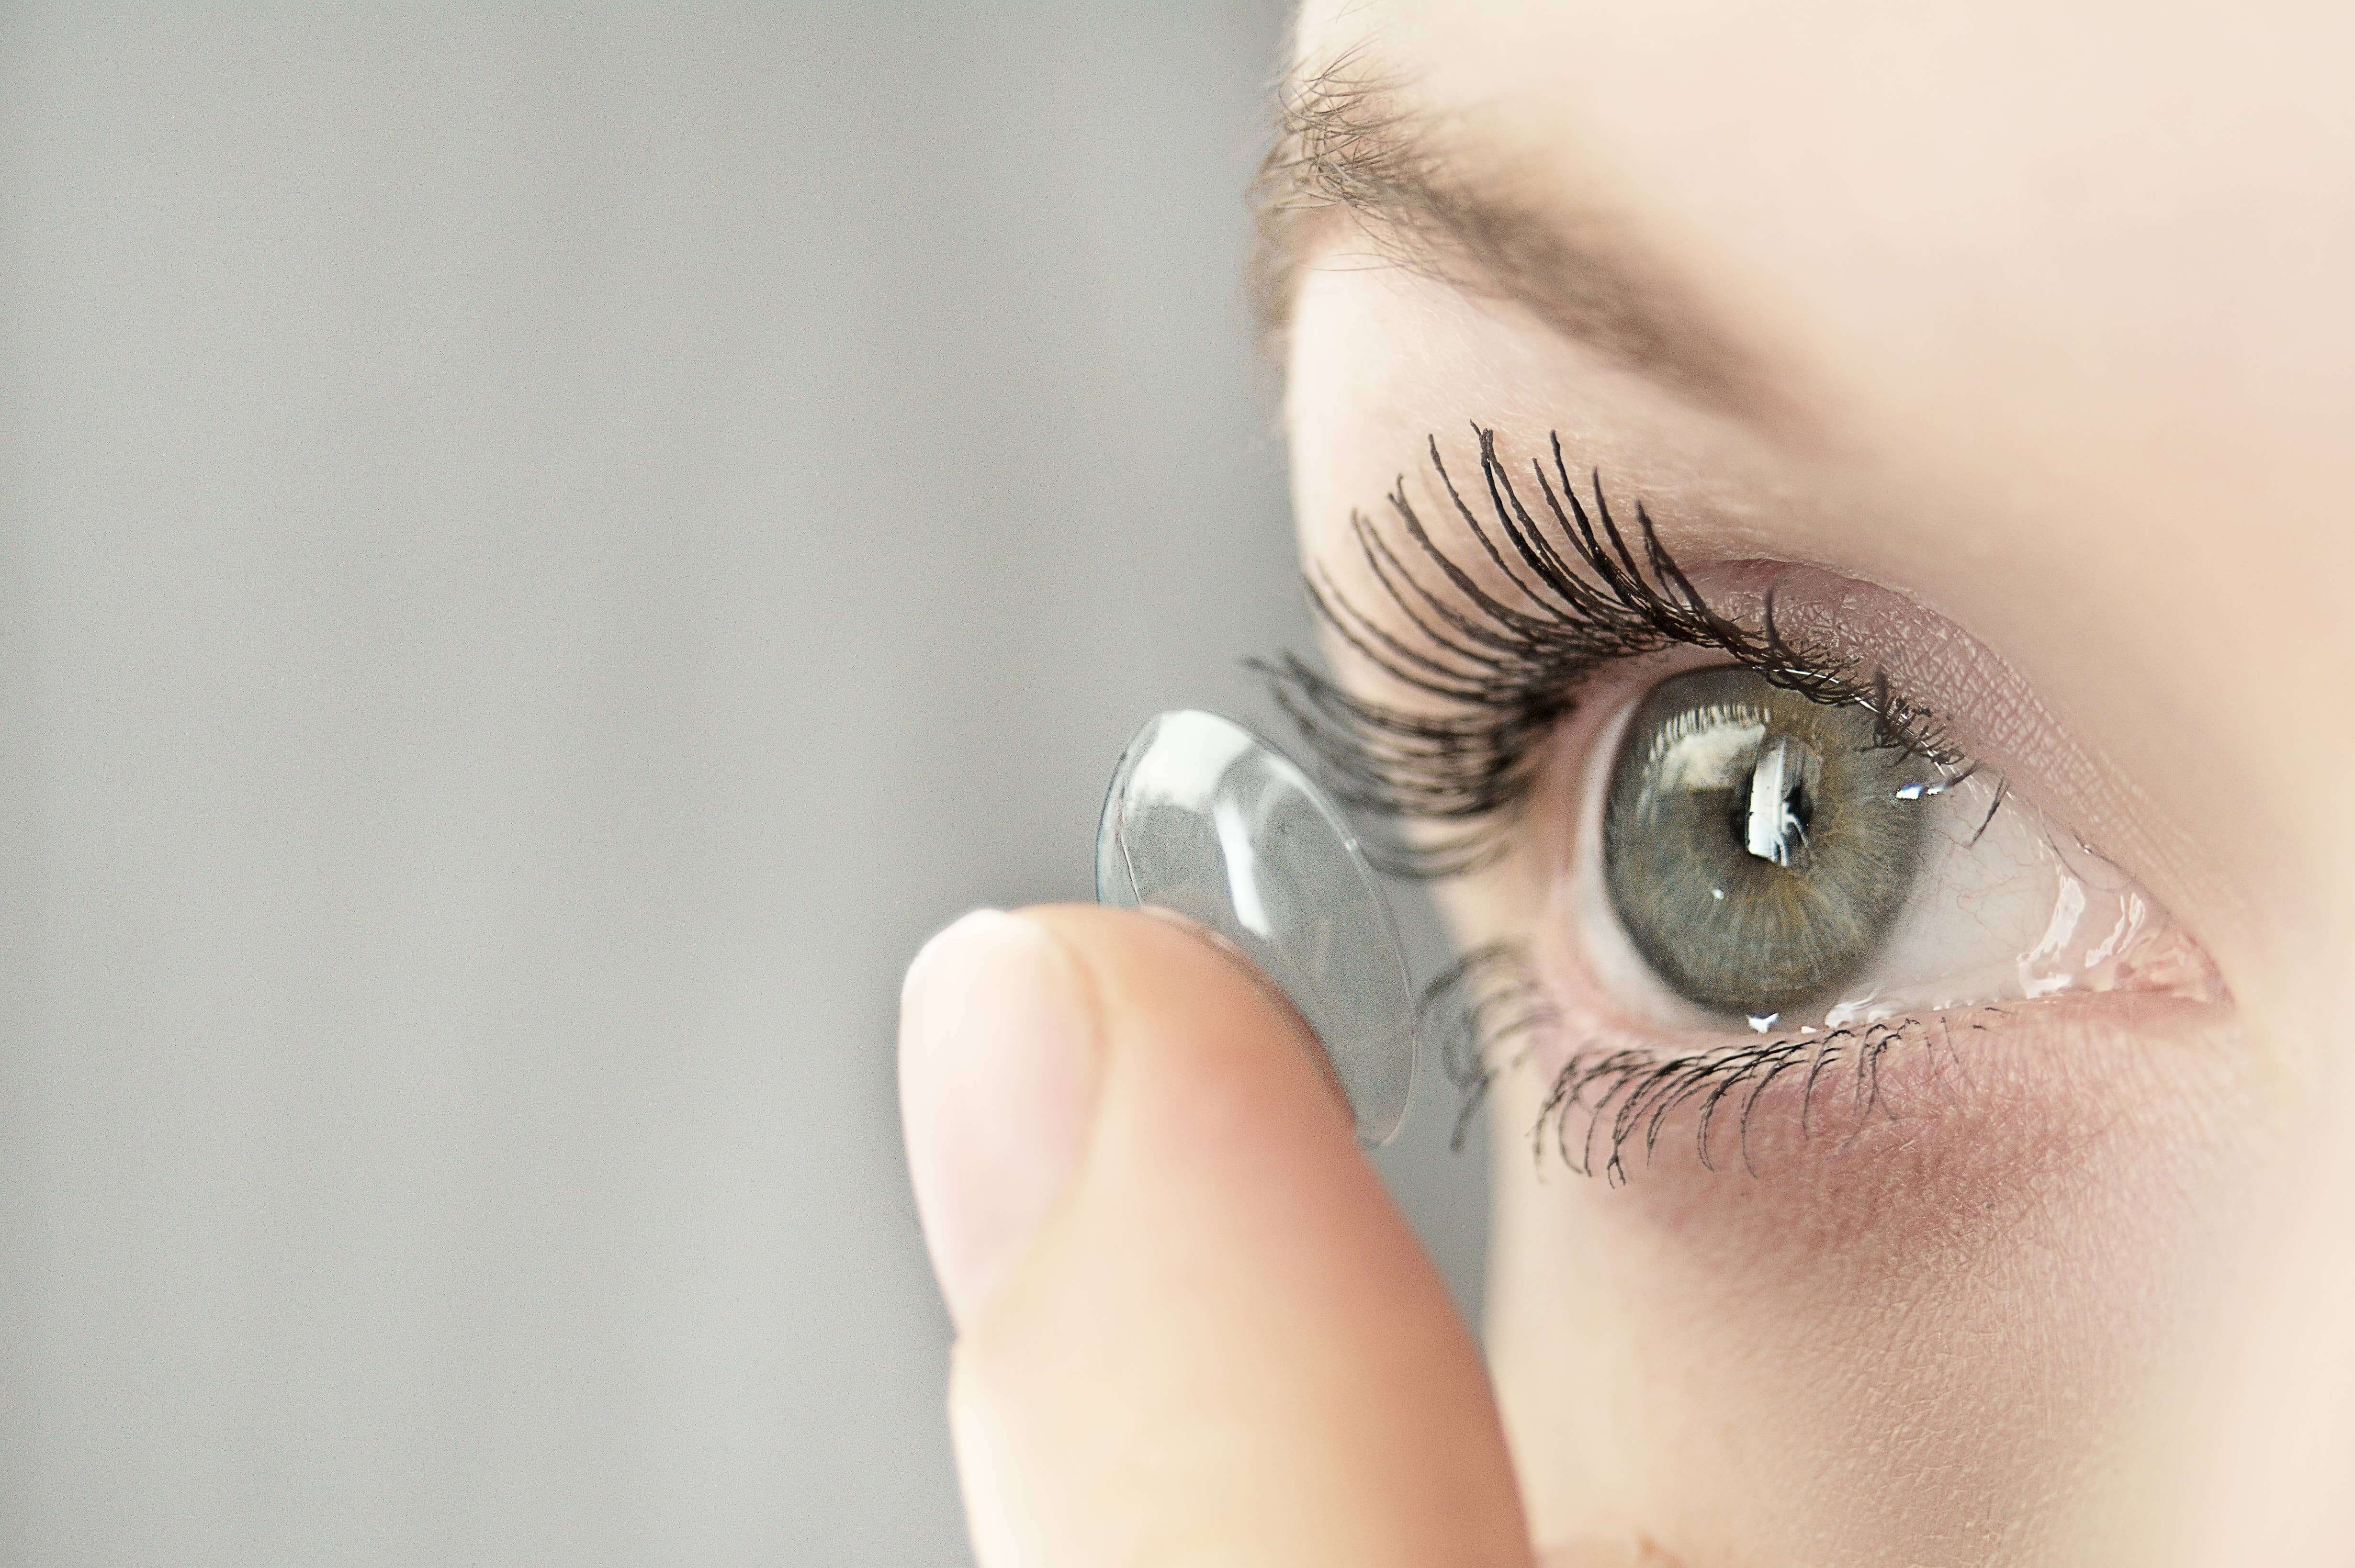 Steps To Protect Contact Lenses